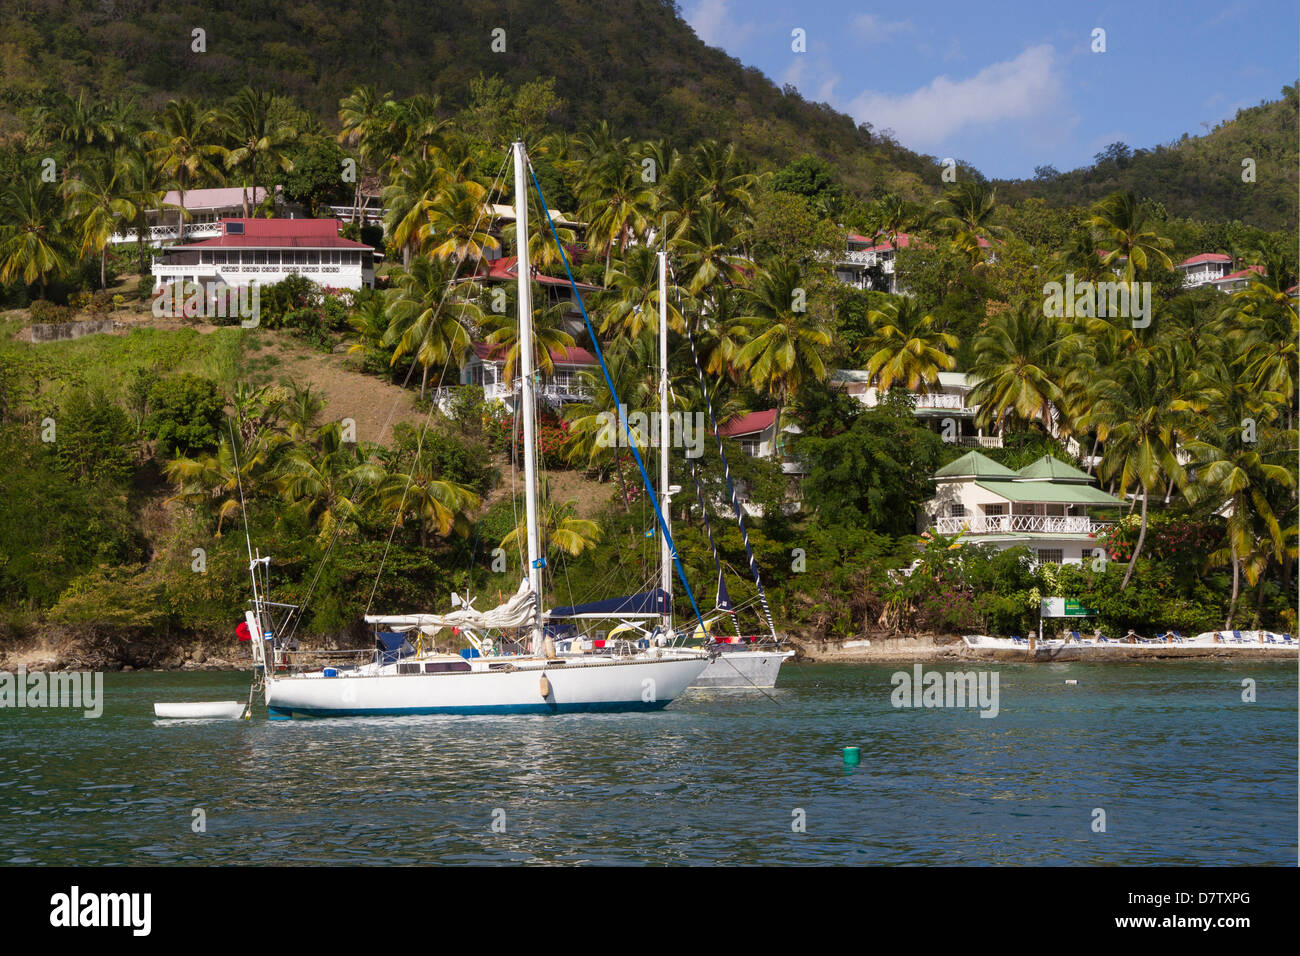 Marigot Bay, Sainte-Lucie, îles du Vent, Antilles, Caraïbes Photo Stock